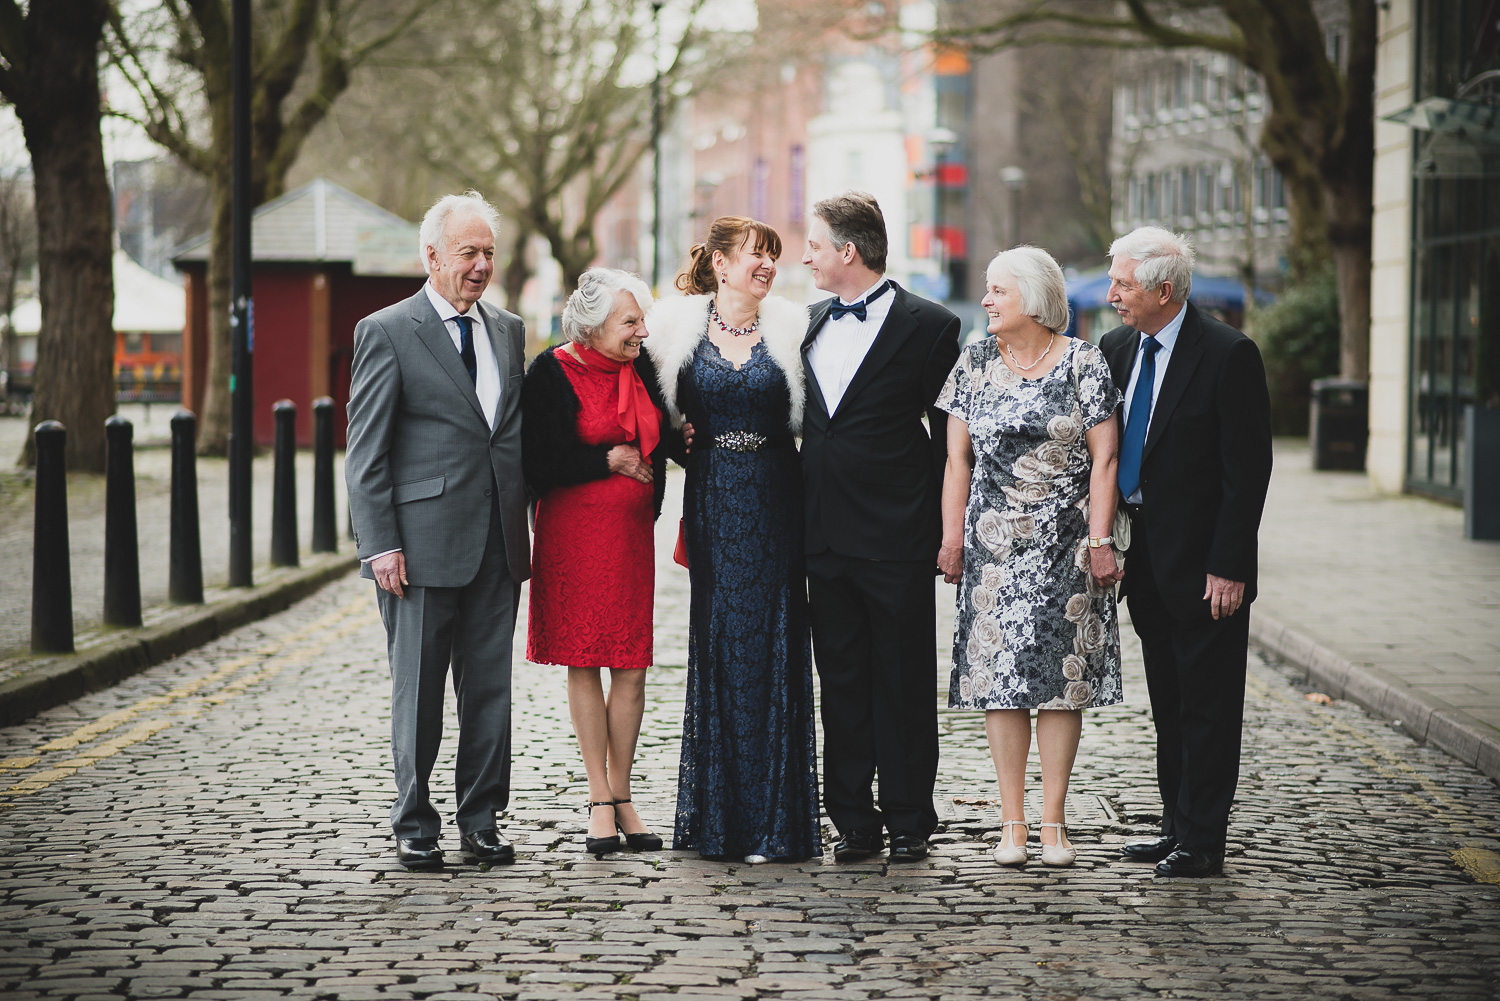 group photo at winter wedding in bristol using 85mm lens